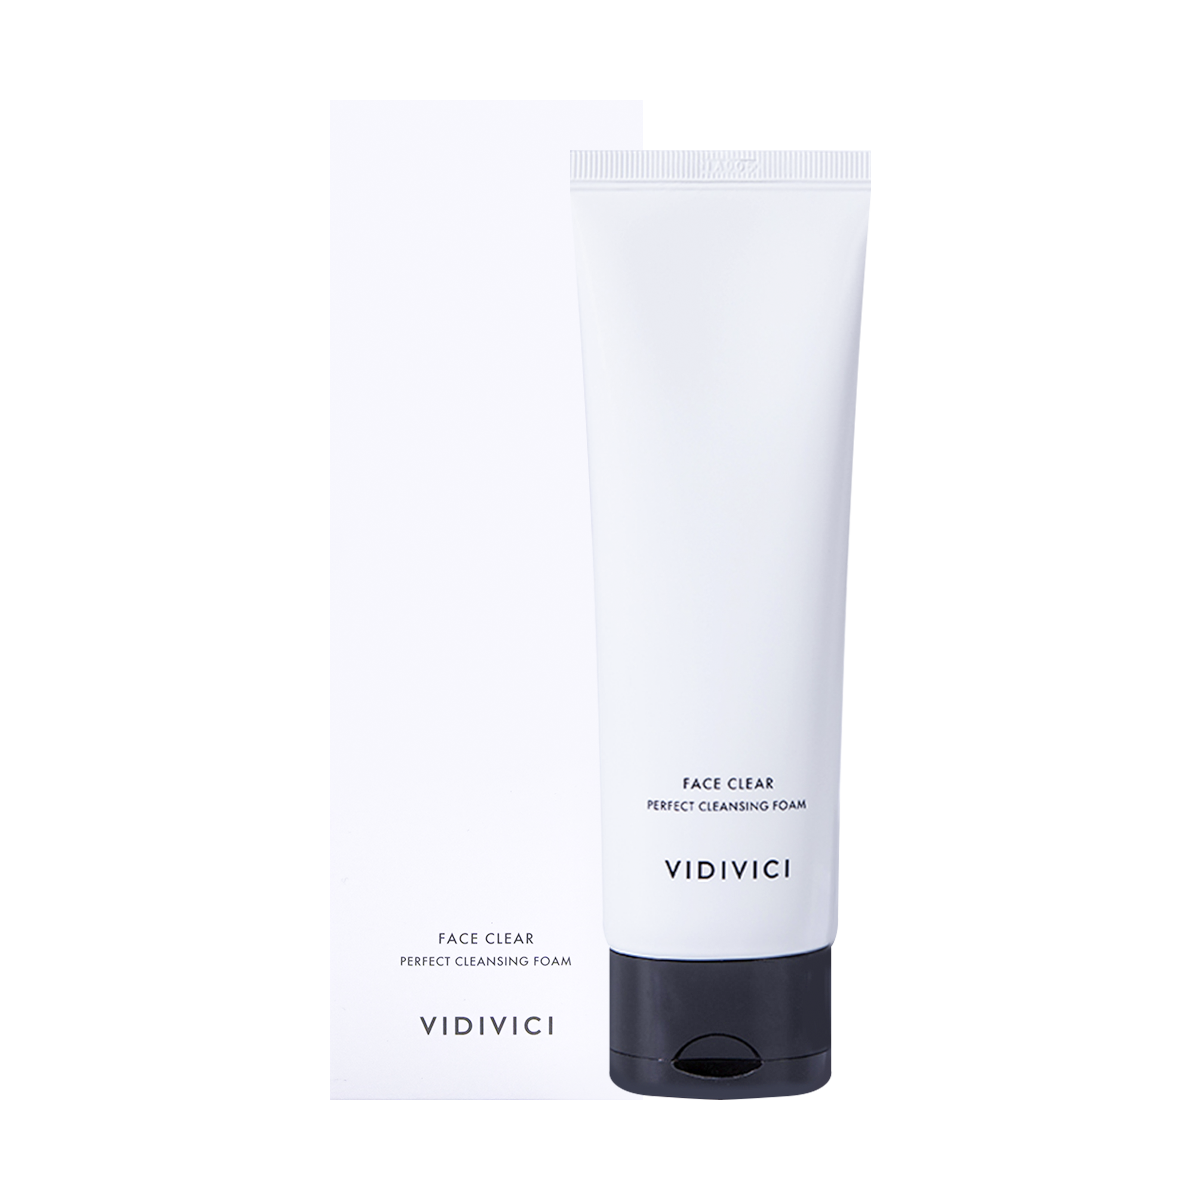 Yamibuy.com:Customer reviews:Face Clear Perfect Cleansing Foam 120ml